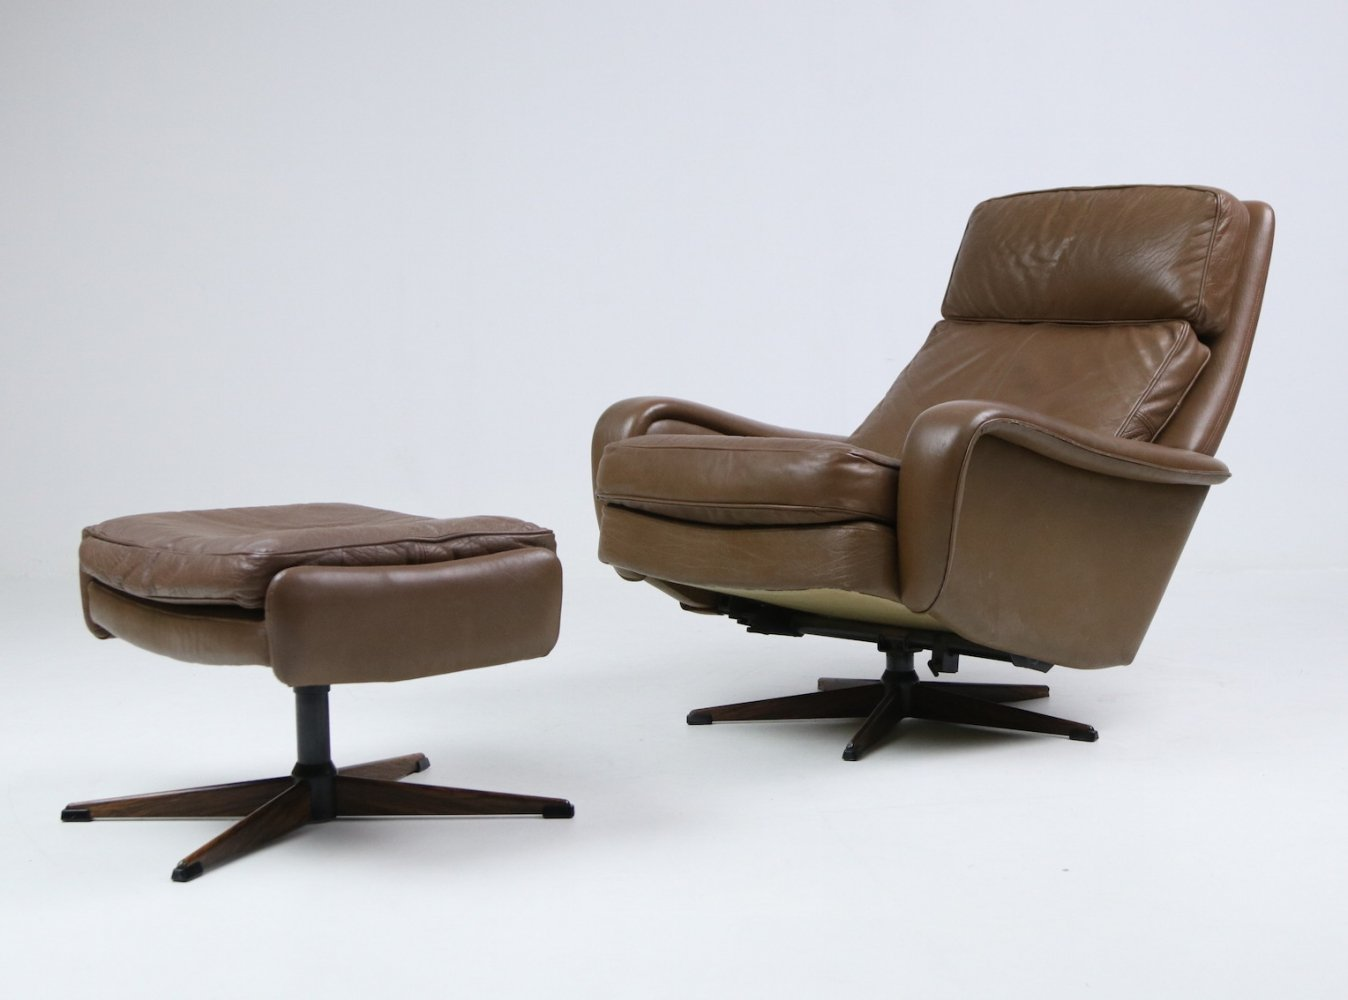 Madsen & Schubel vintage armchair in buffalo leather with ottoman